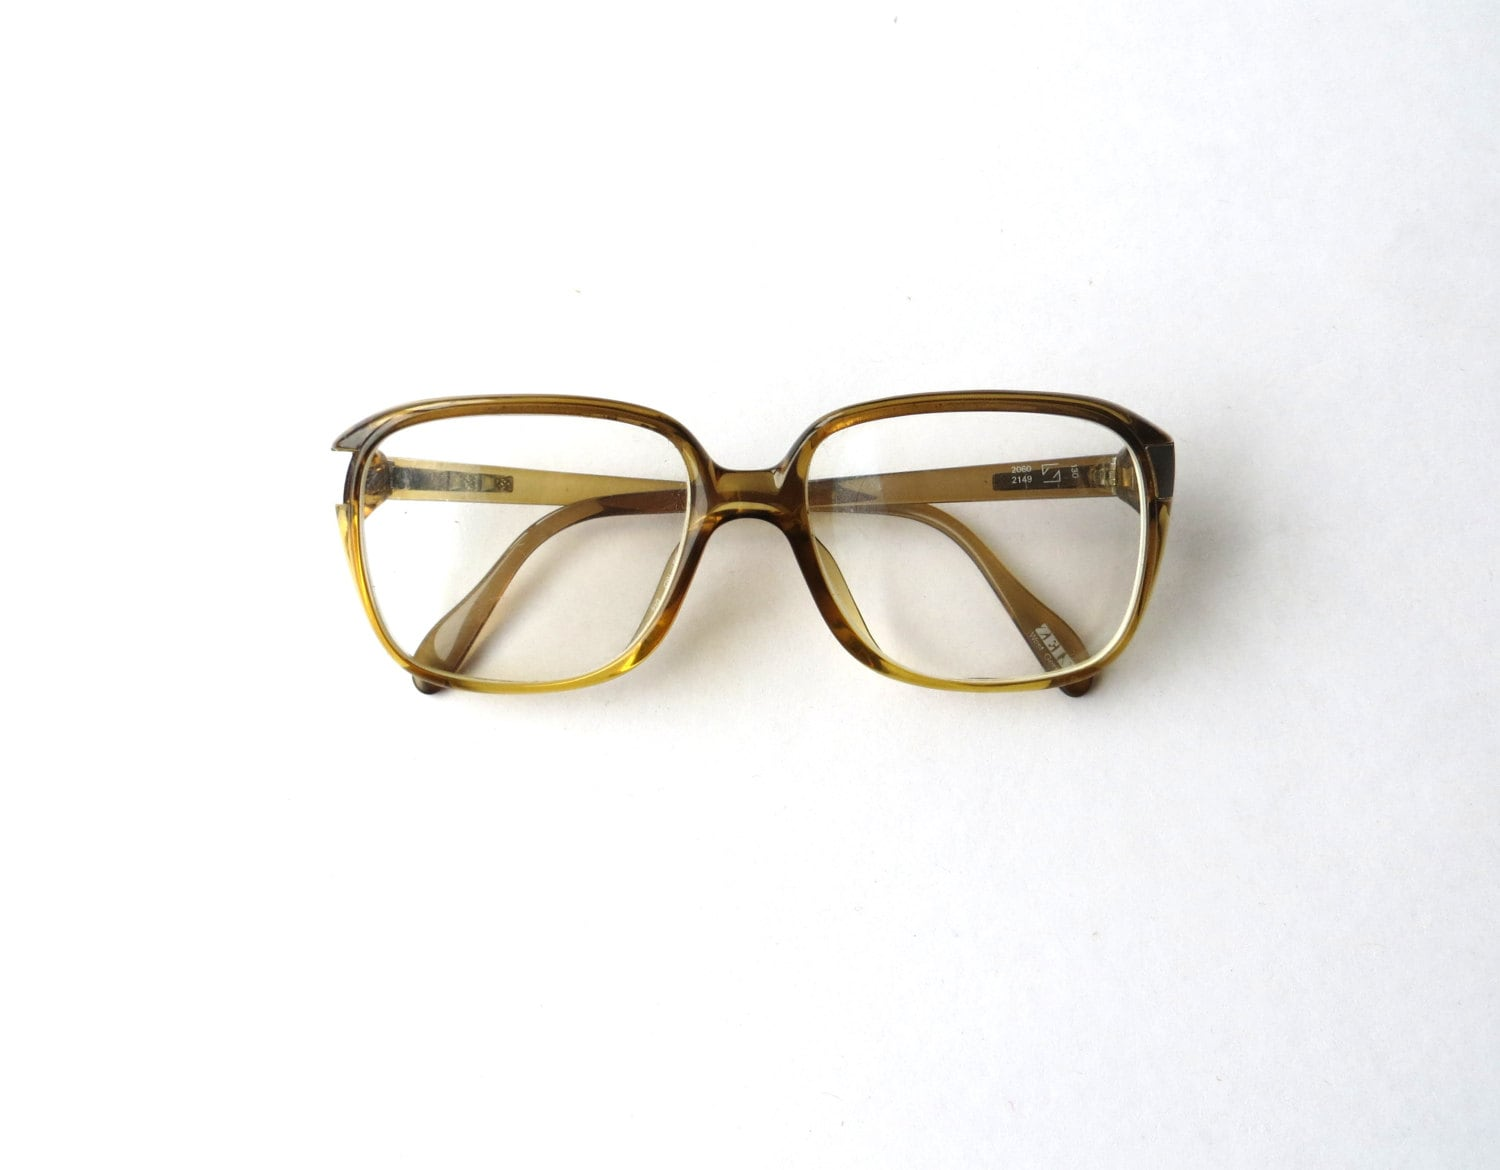 Zeiss Optical Glasses : 70s Zeiss Eyeglasses Brown Unisex Men Women by ...